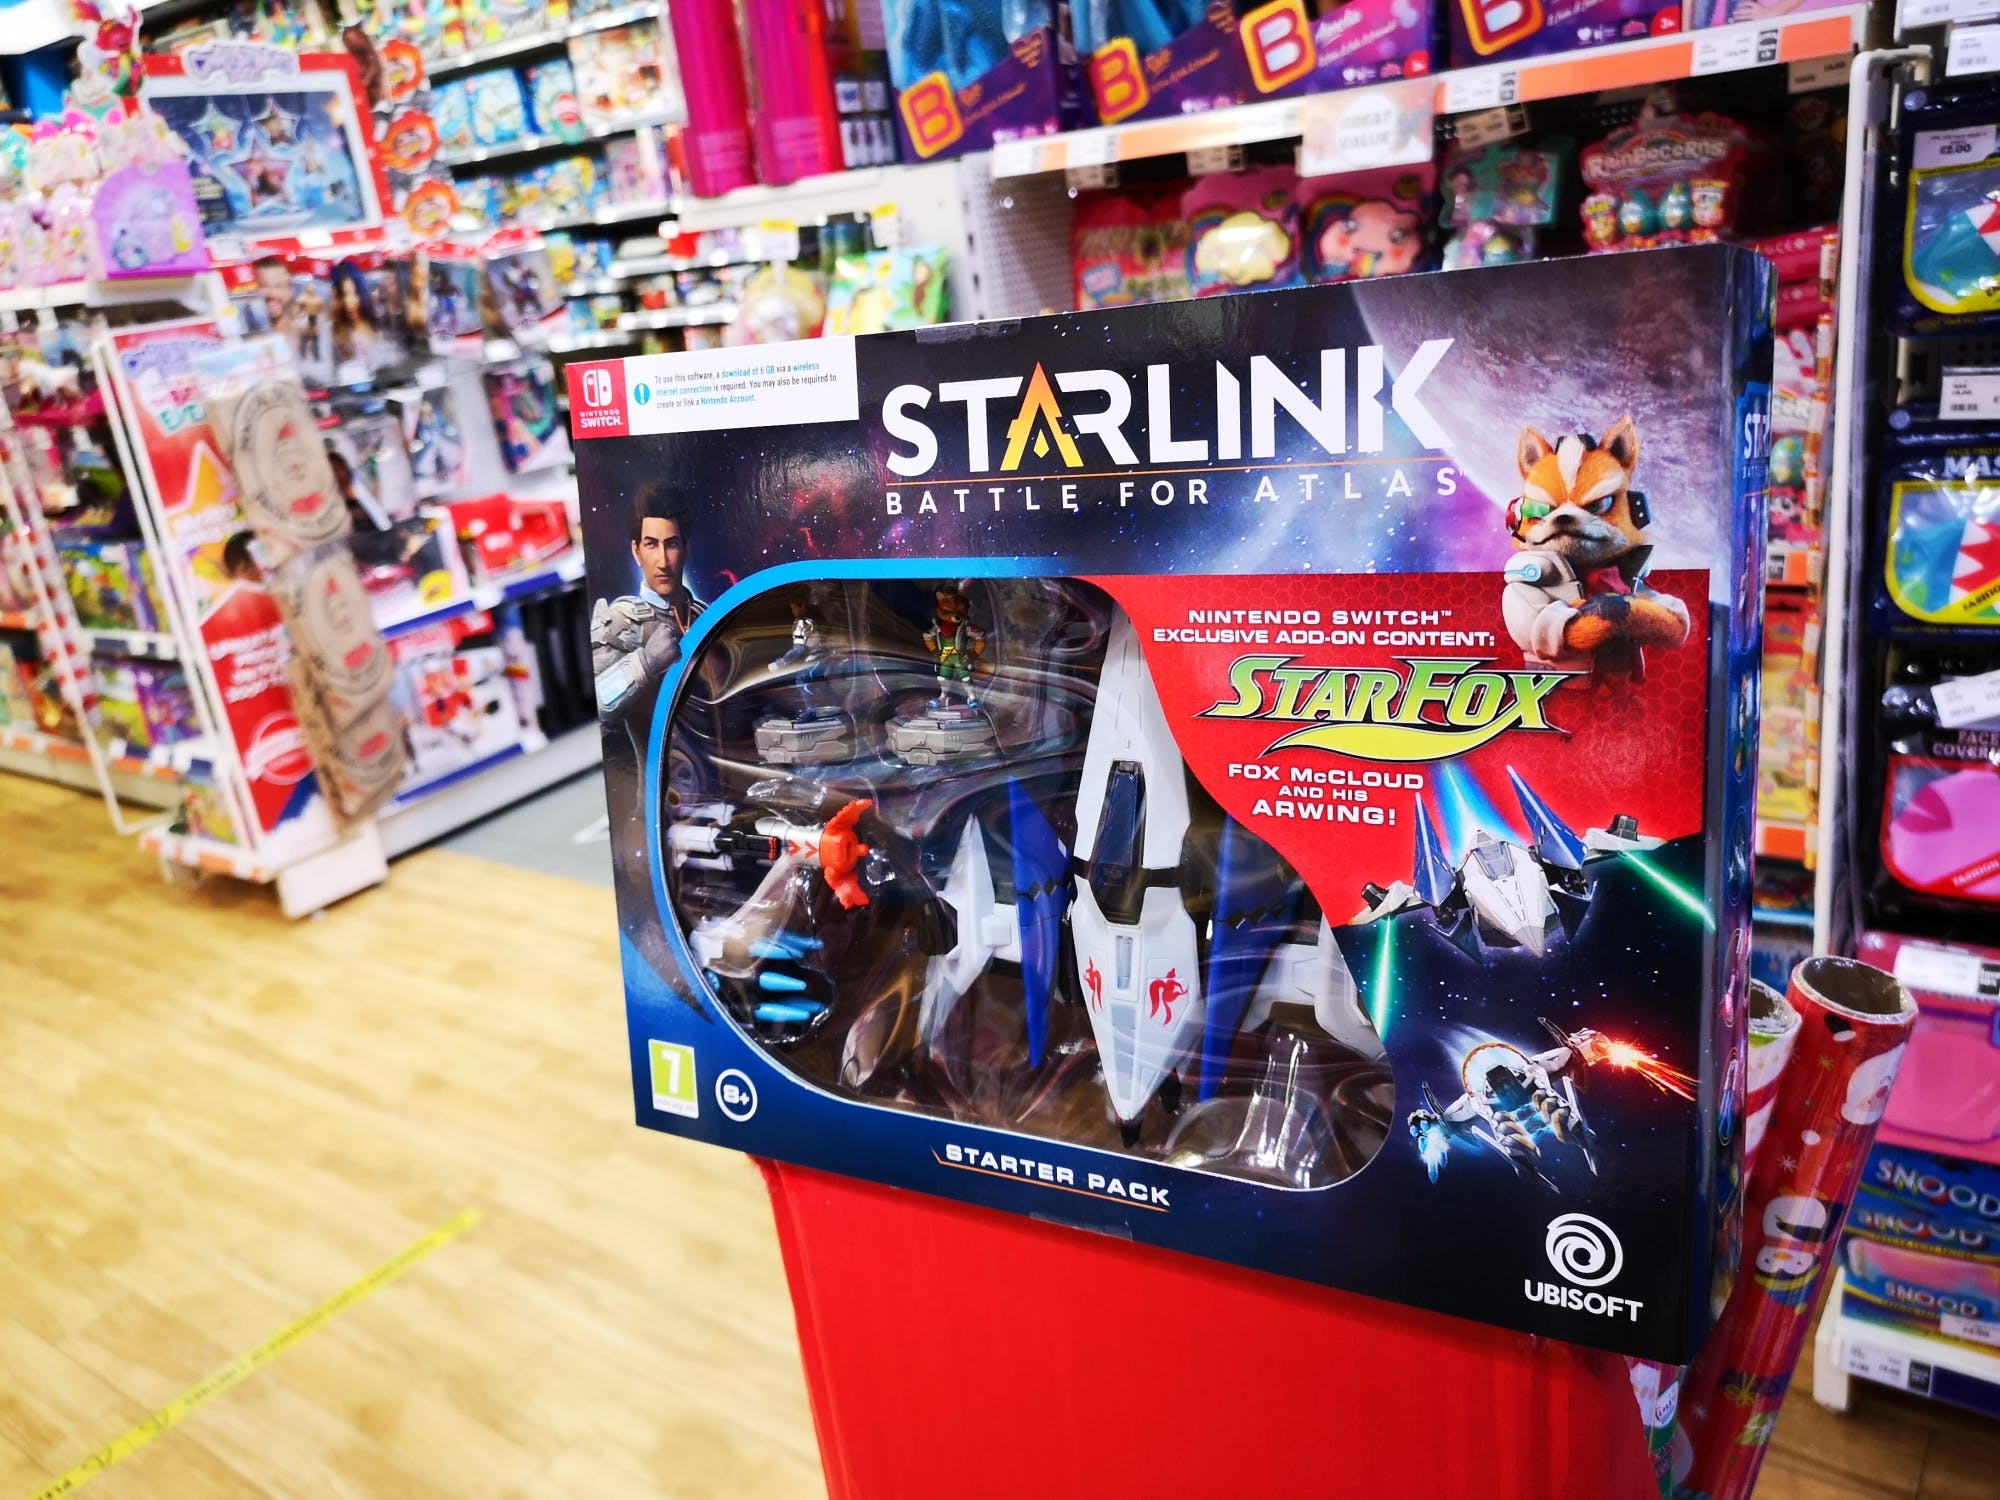 Deal alert for Nintendo Switch fans! Starlink interactive toy and game for just £7.99 at The Entertainer!